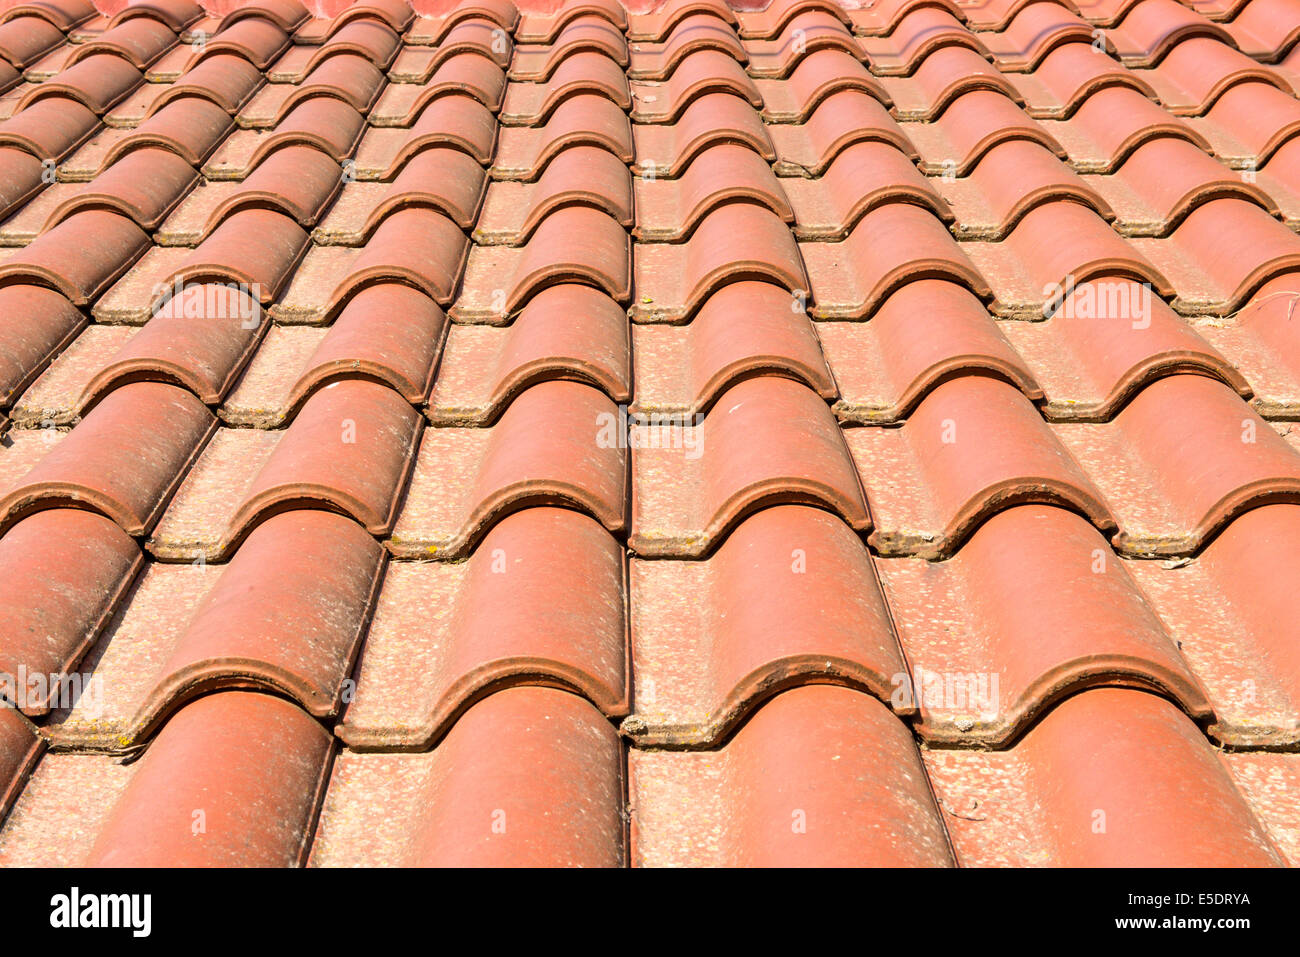 Terracotta roof tiles on the roof of a building stock photo terracotta roof tiles on the roof of a building dailygadgetfo Image collections